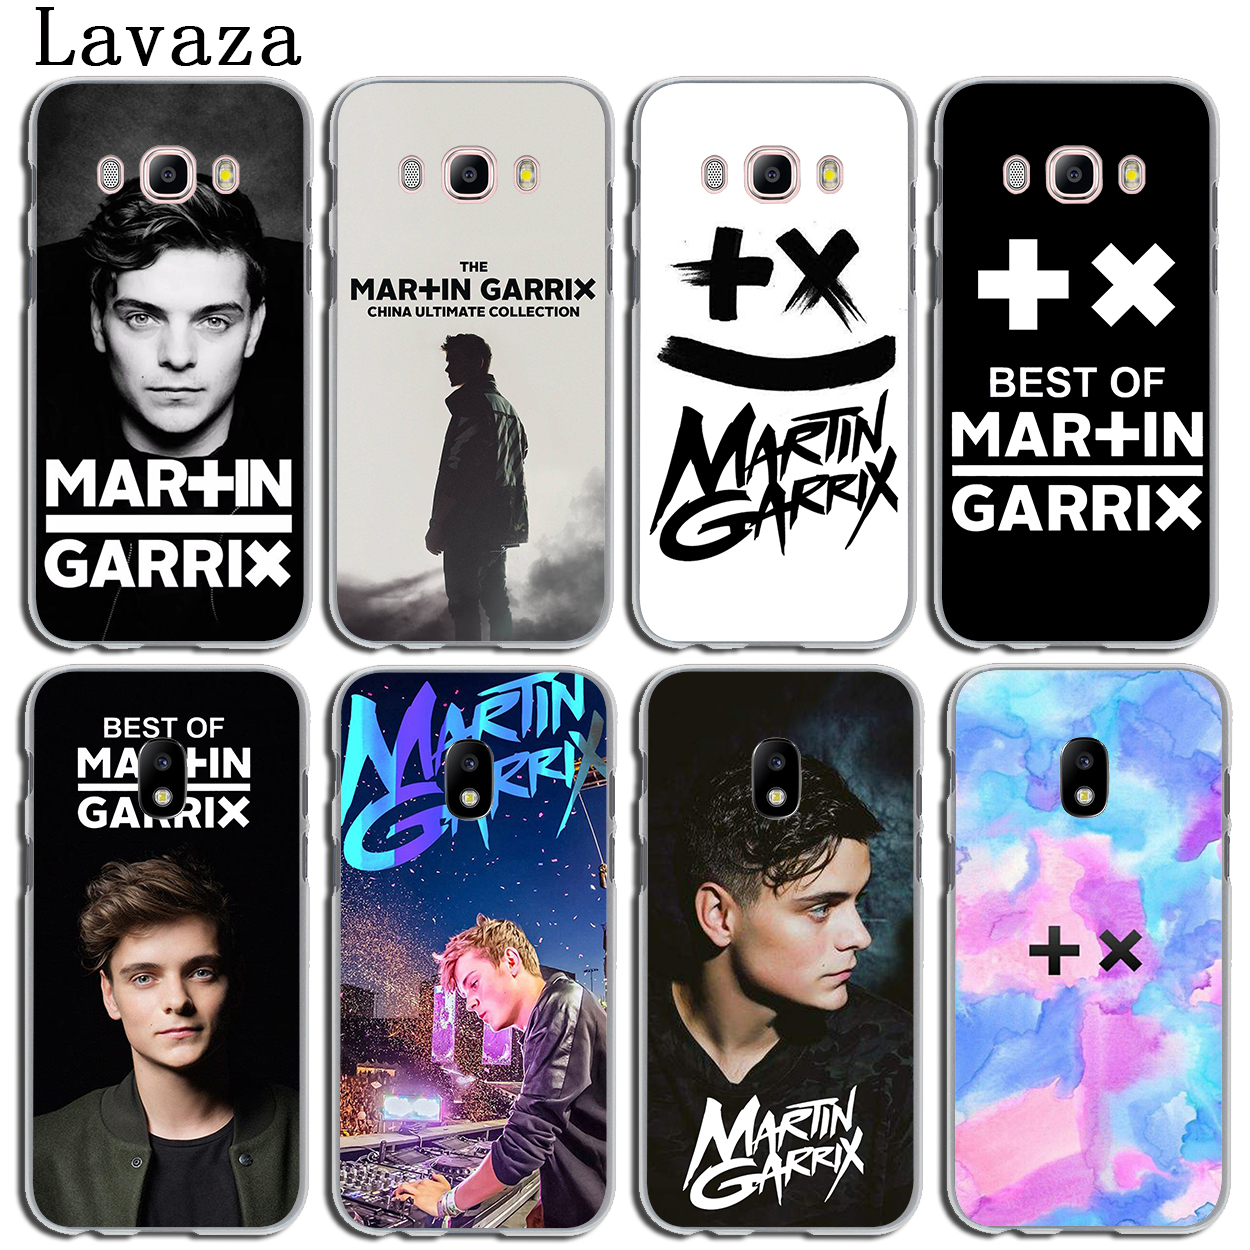 Lavaza Martin Garrix DJ Phone Shell Cover Case for Samsung Galaxy J3 J1 J2 J7 J5 2015 2016 2017 J2 Pro Ace J5 J7 Prime Case